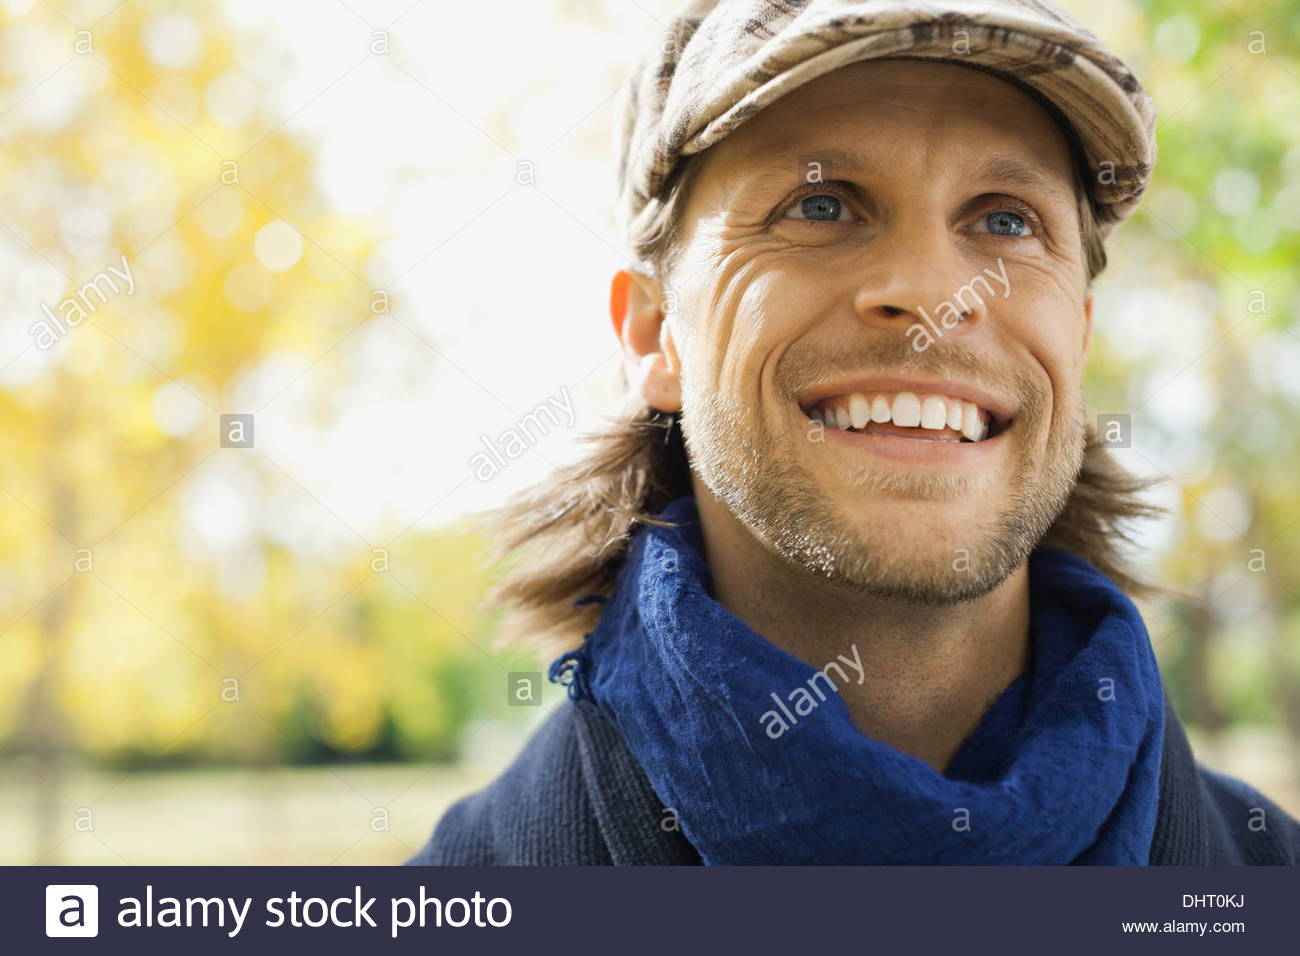 Close-up of happy man at park - Stock Image